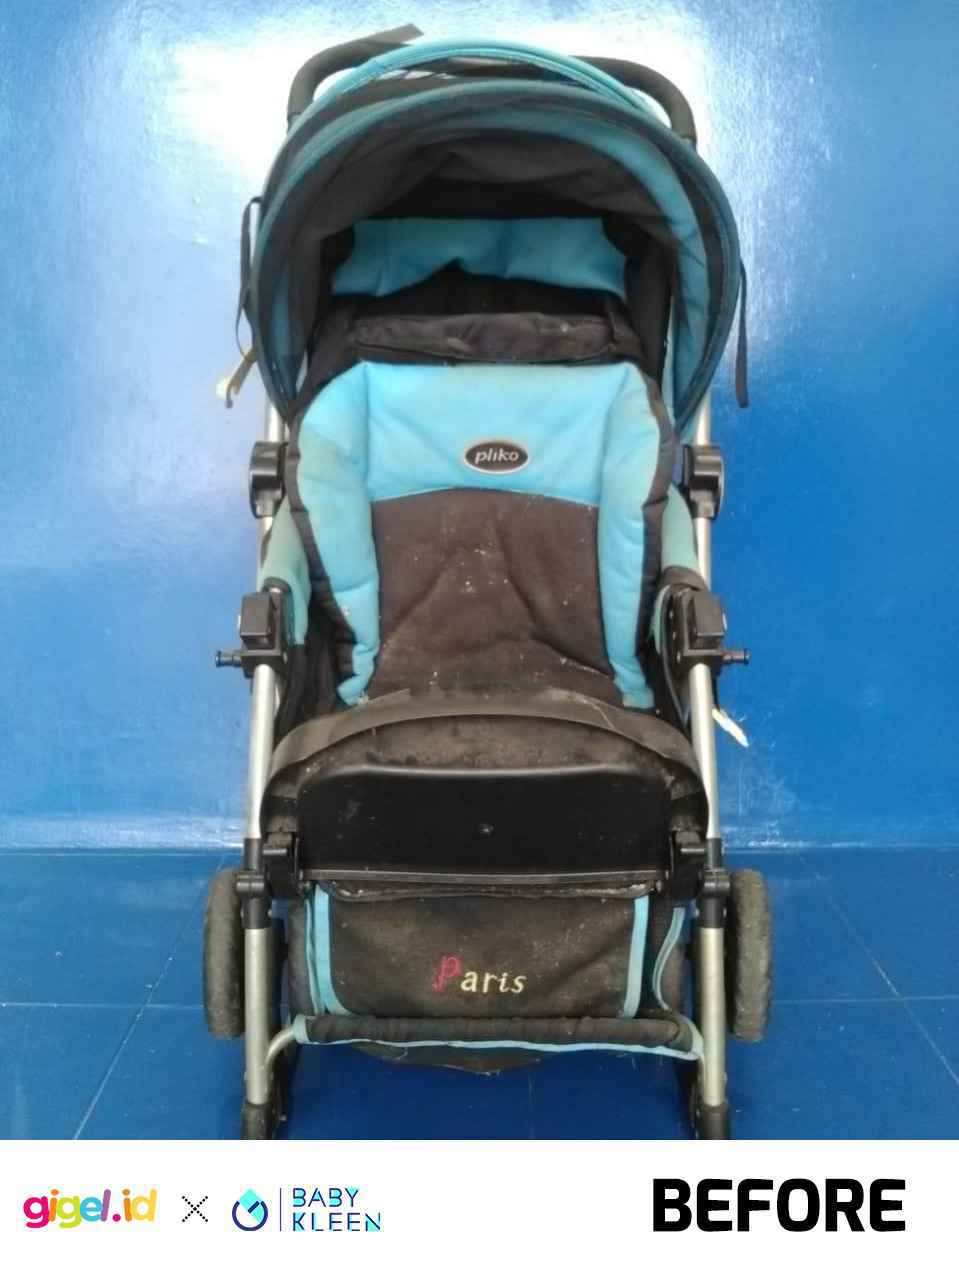 GIGEL.ID x Baby Kleen Laundry Stroller  Double - 4